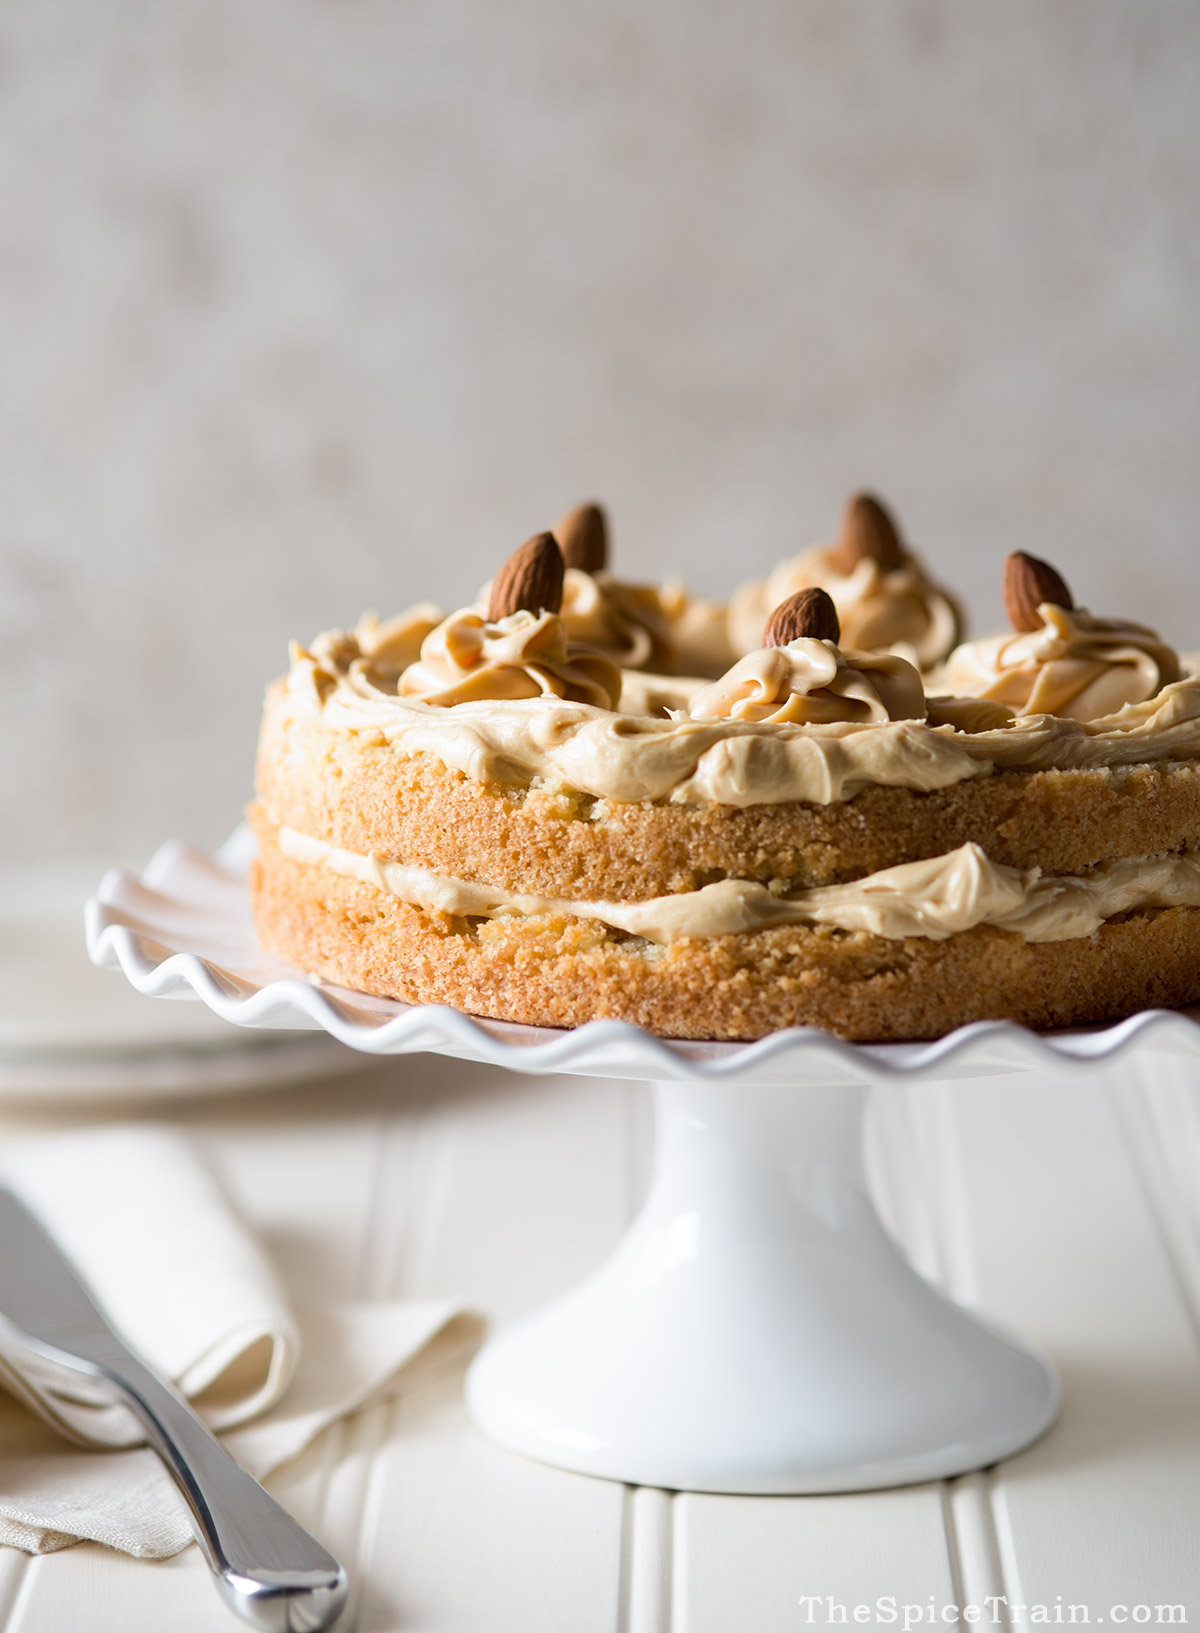 A two layer butter almond cake with caramel frosting.